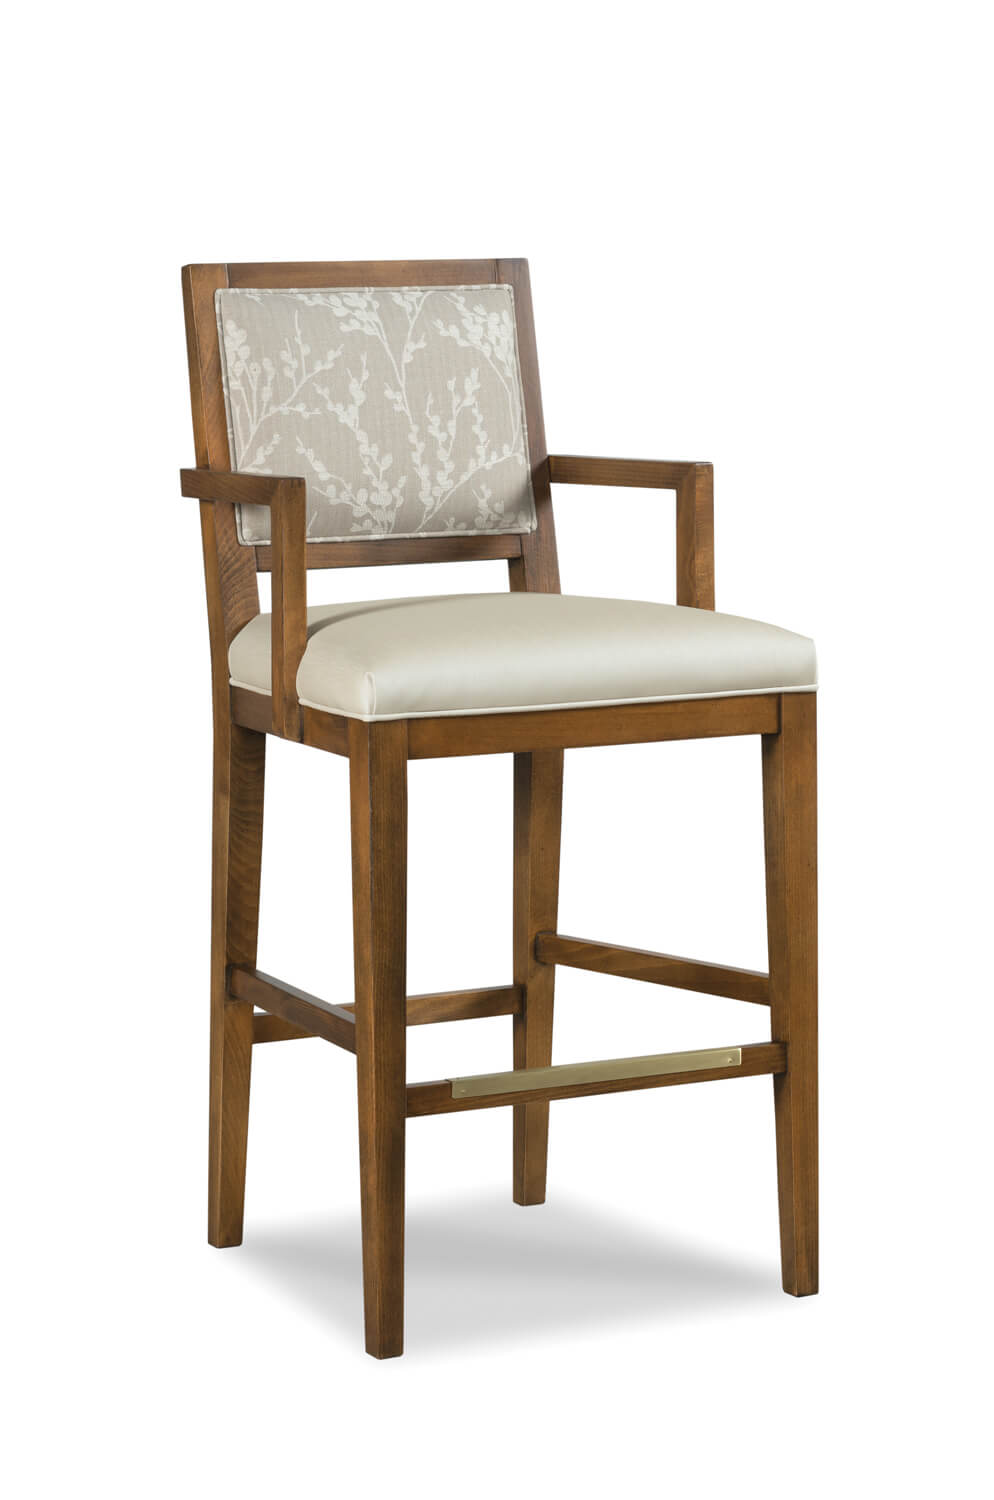 Fairfield Chair's Potter Transitional Wooden Bar Stool with Arms